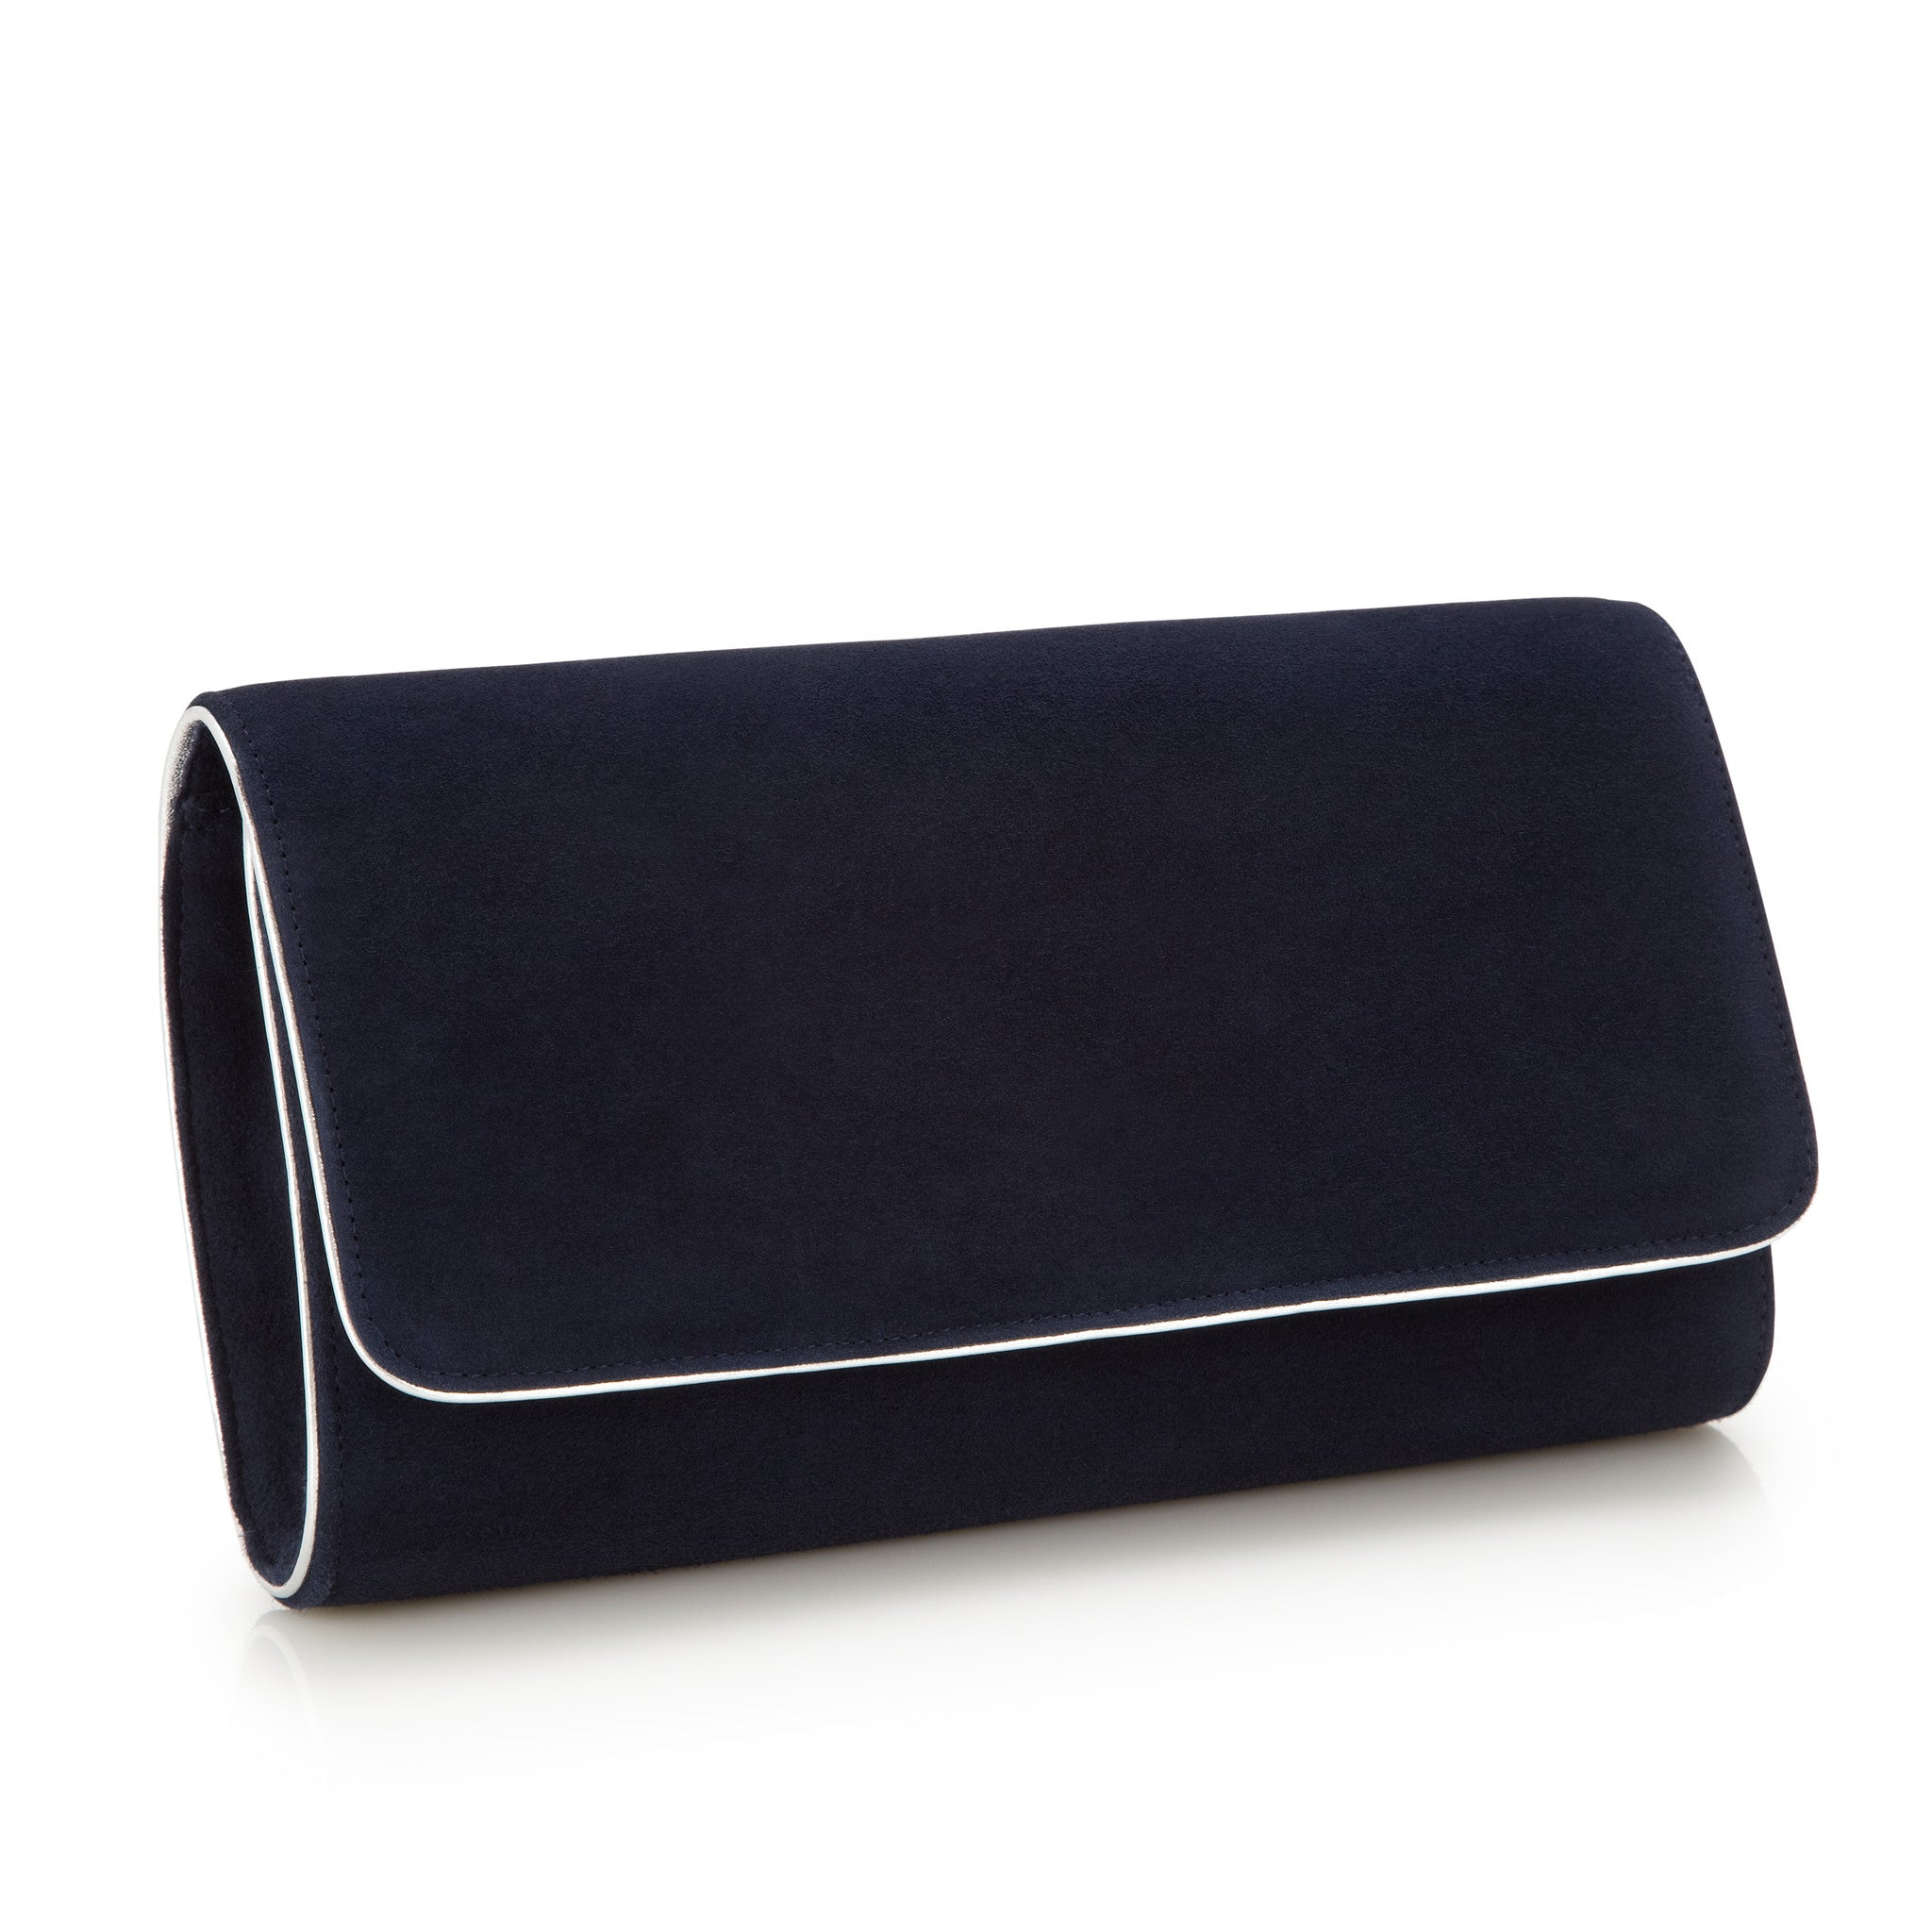 296675dd21da ... Natasha Midnight - Occasion Accessories - Midnight Kid Suede - Clutch -  Bag - Silver Leather ...